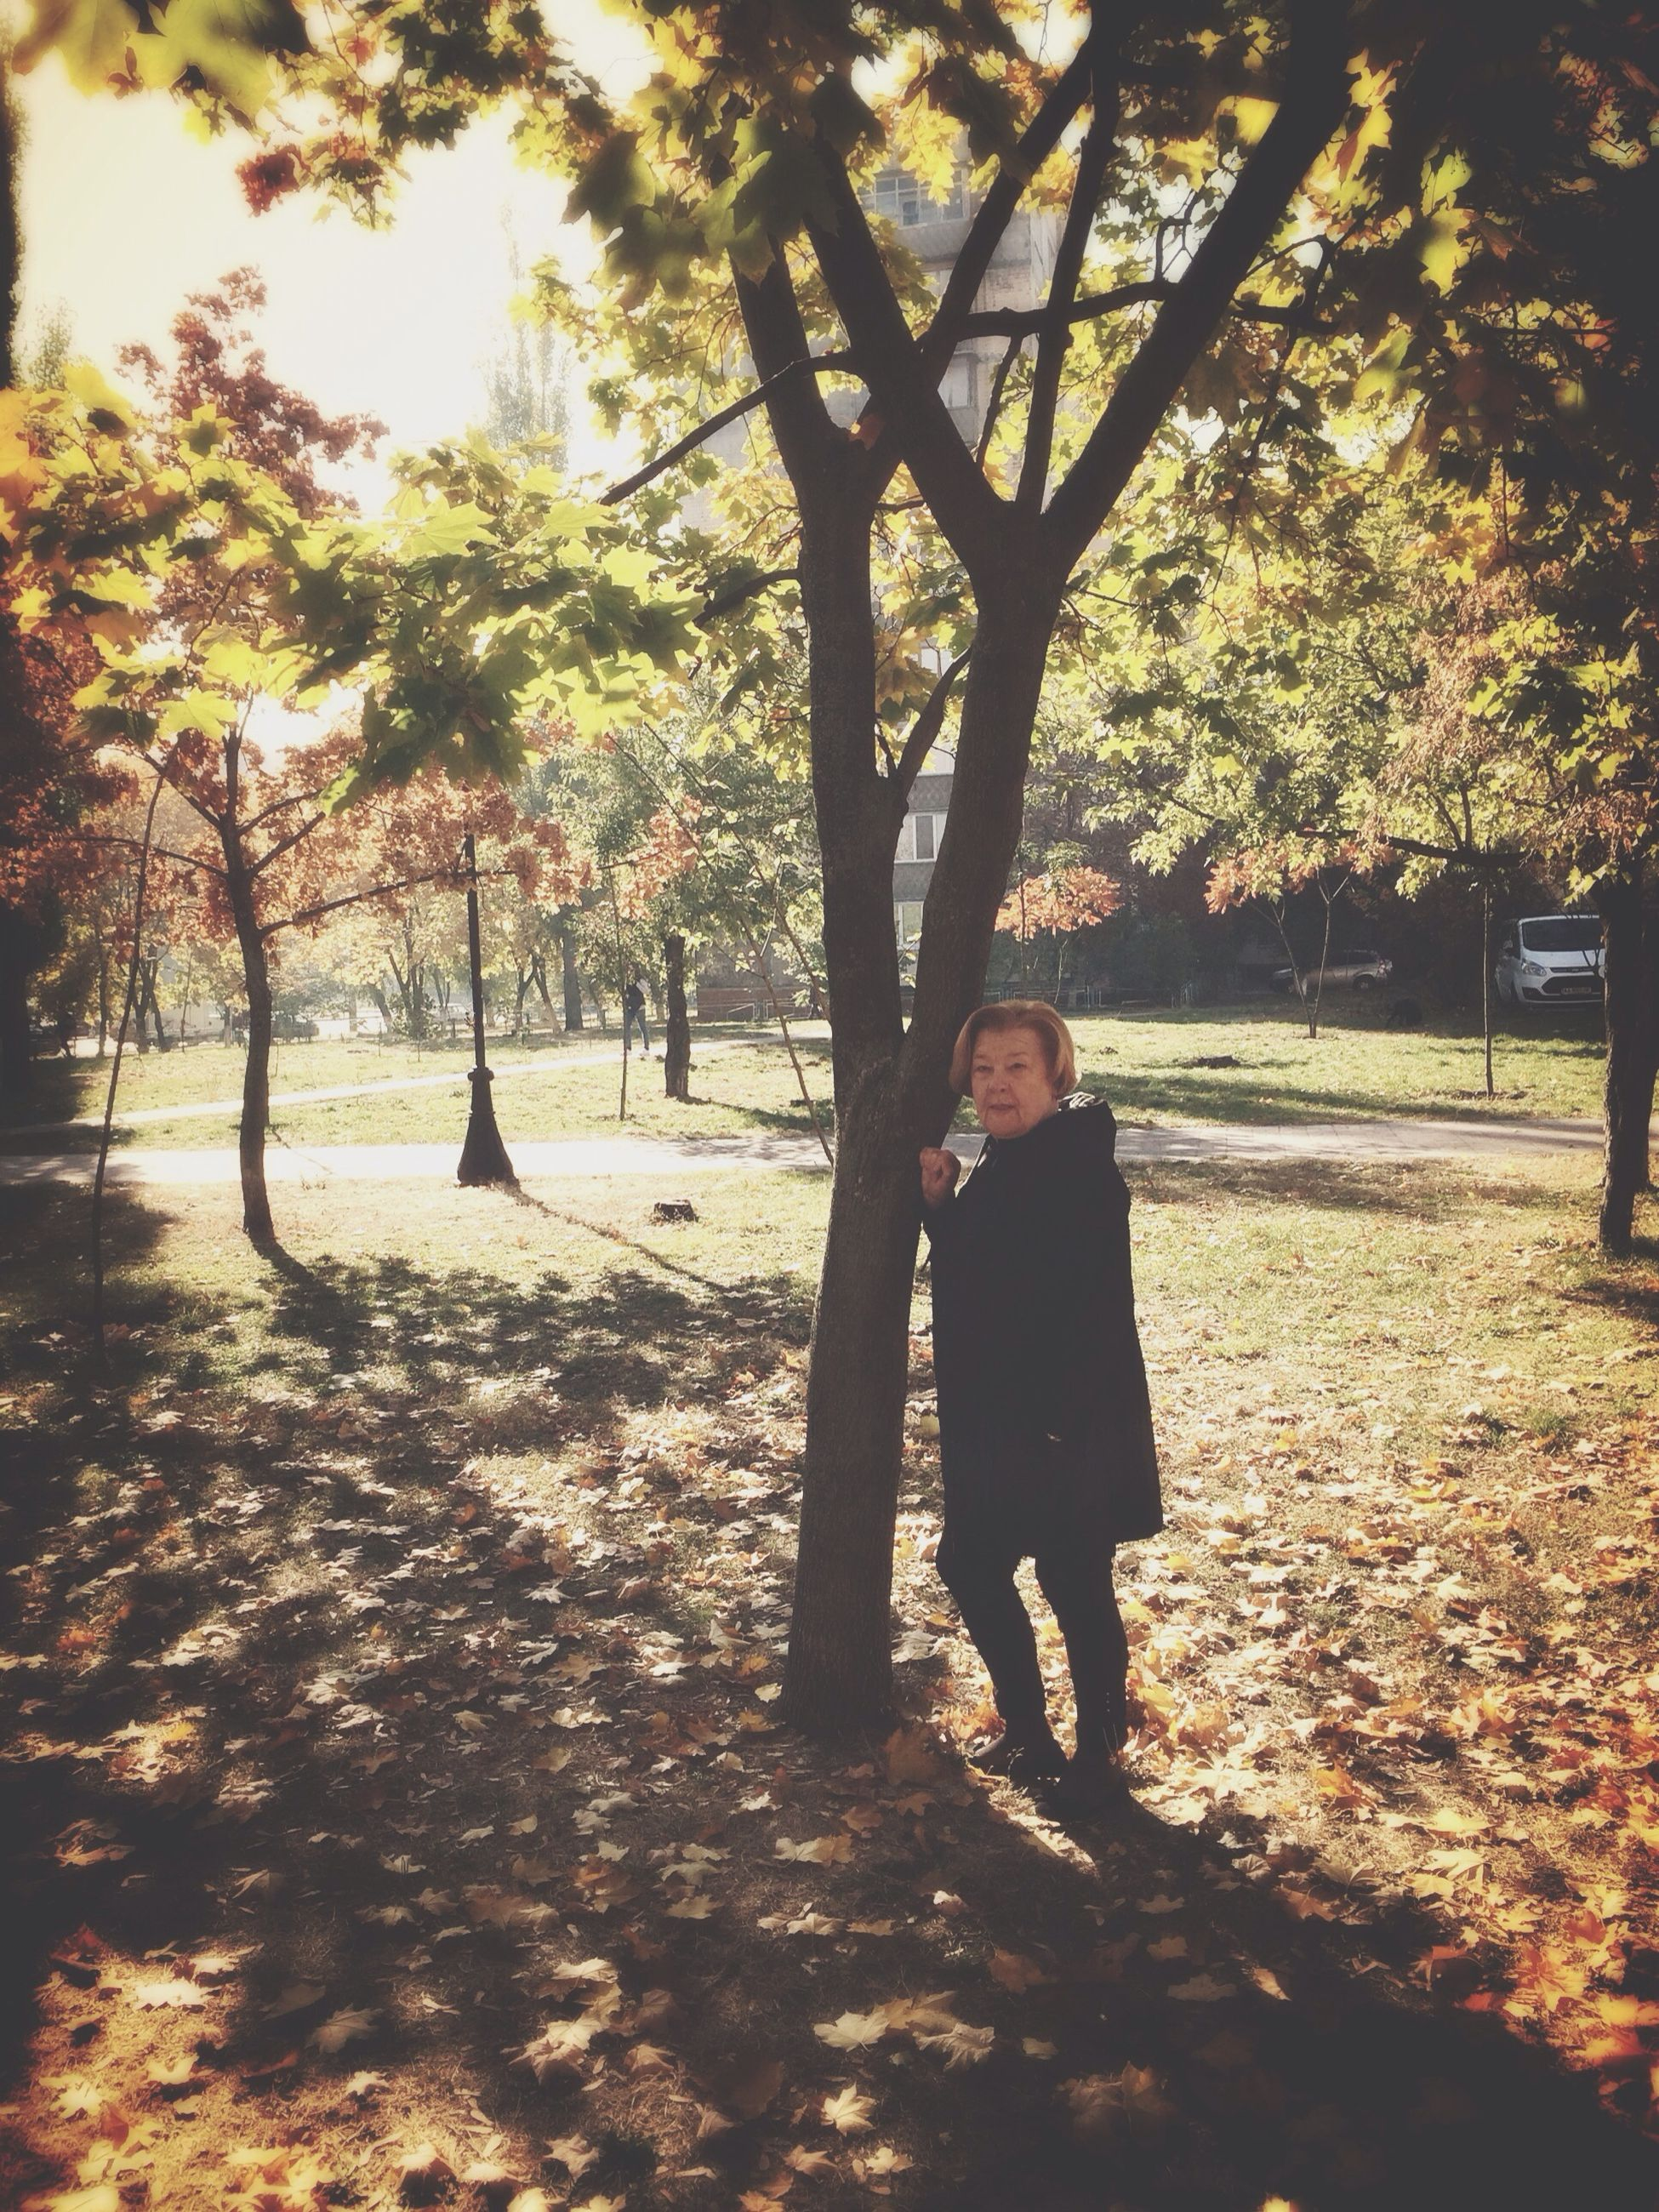 tree, autumn, lifestyles, change, leisure activity, season, walking, rear view, full length, leaf, park - man made space, person, standing, tree trunk, nature, sunlight, casual clothing, growth